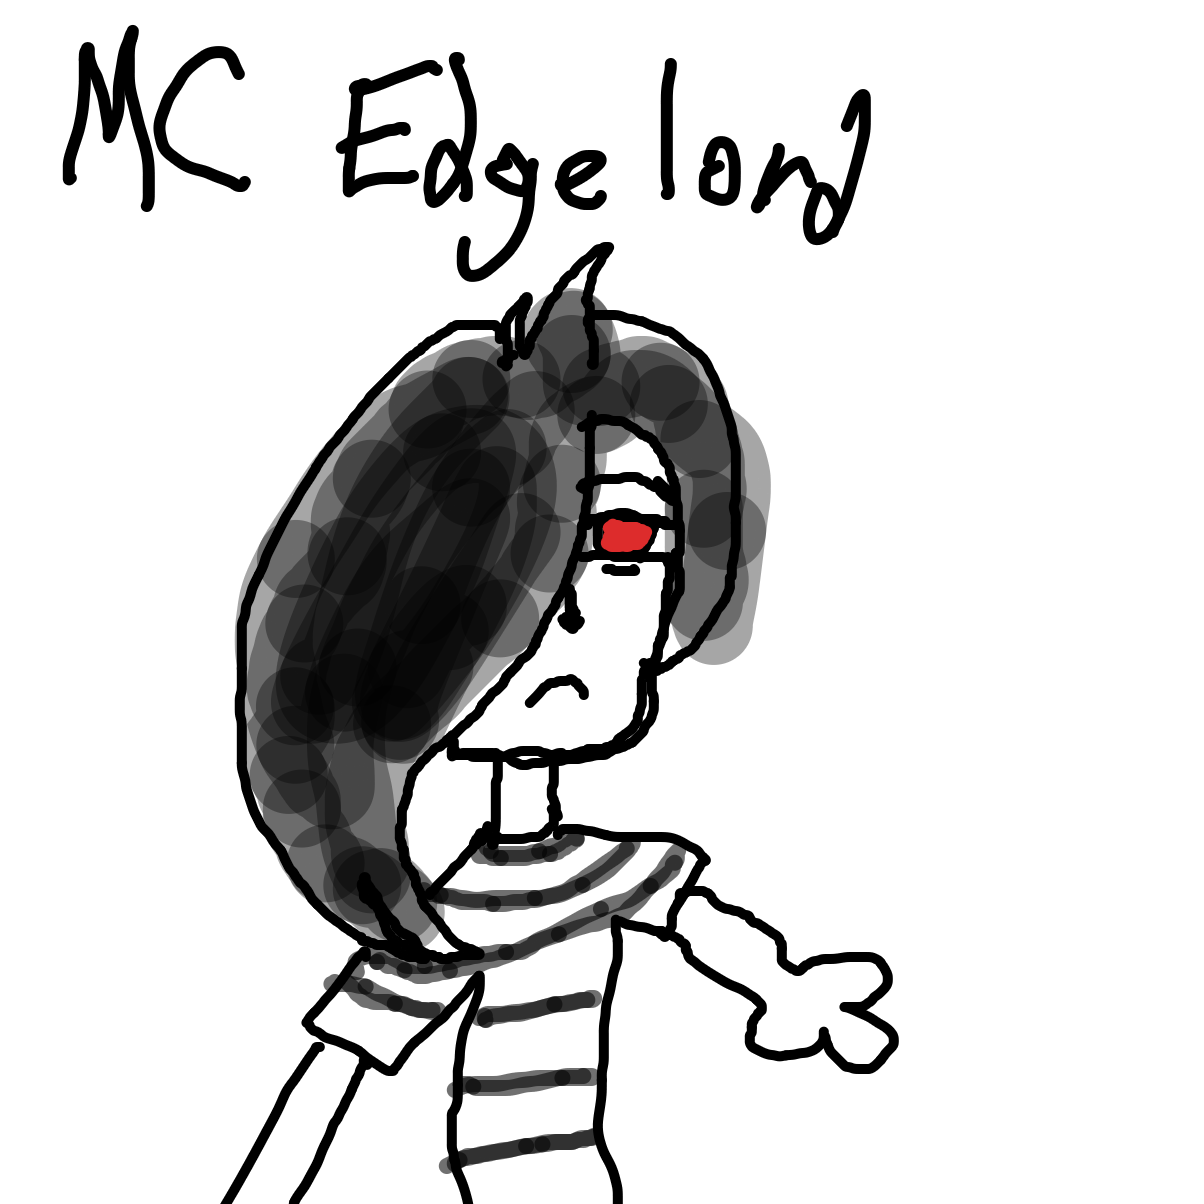 Drawing in Draw one of your oc's alter egos v3 by LizardPie34